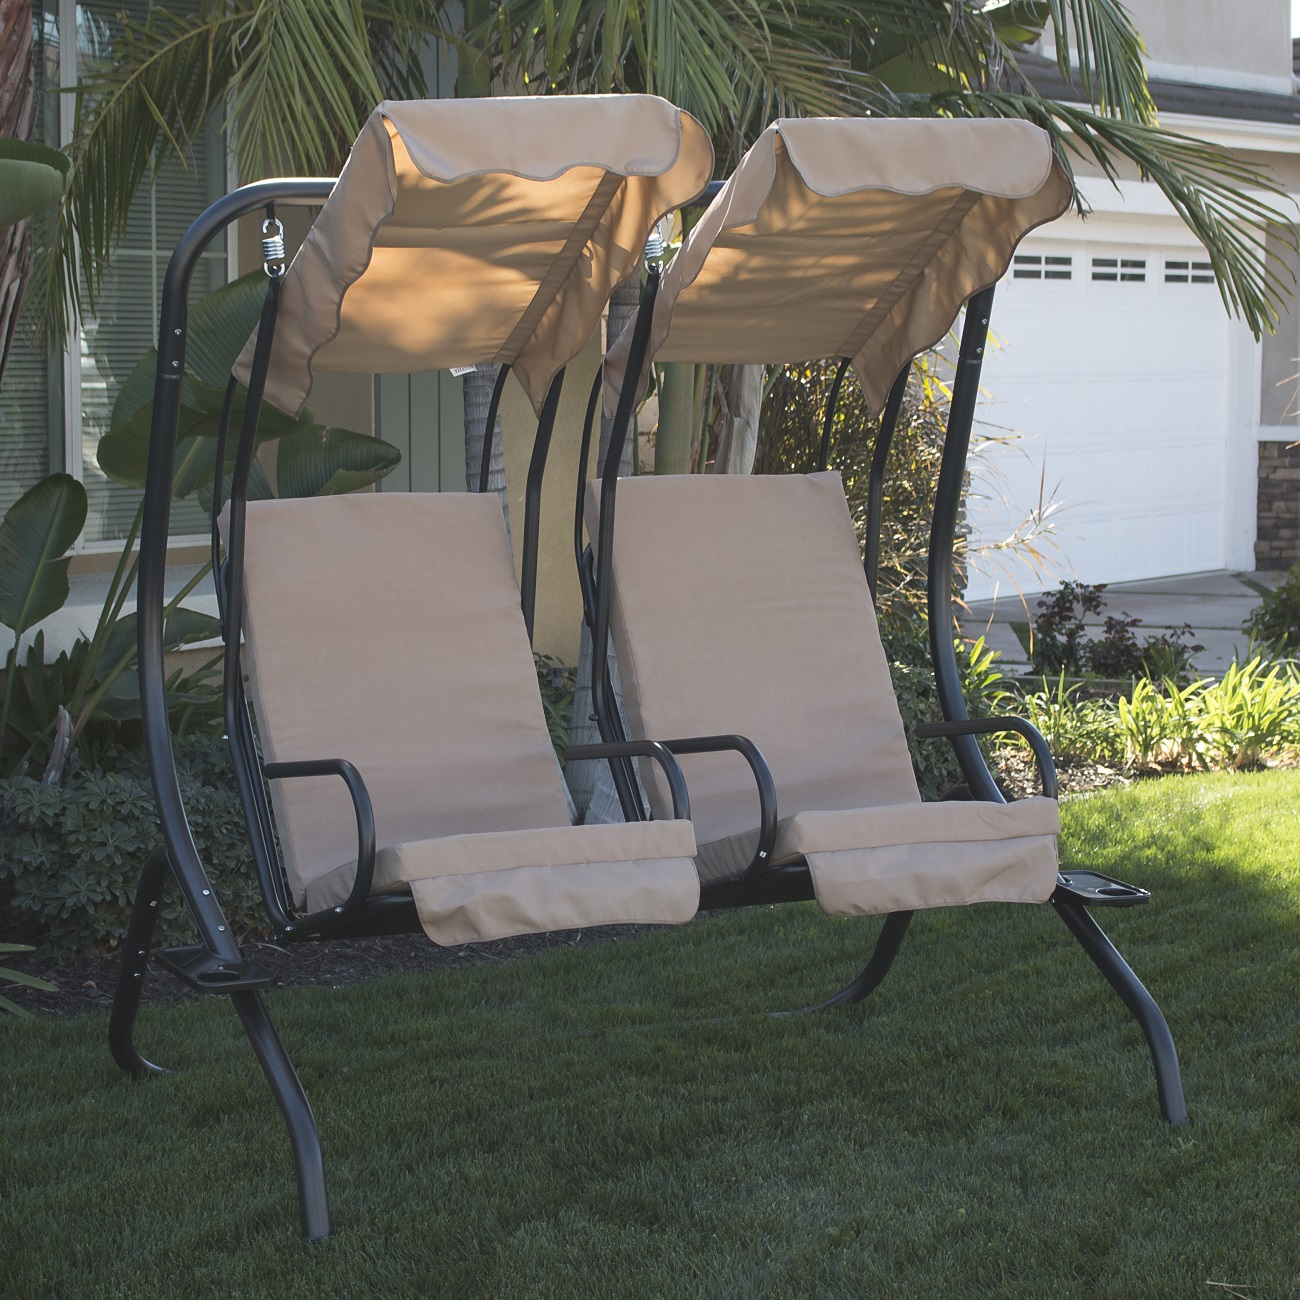 swing chair over canyon bedroom chairs ikea new outdoor set 2 person patio frame padded seat